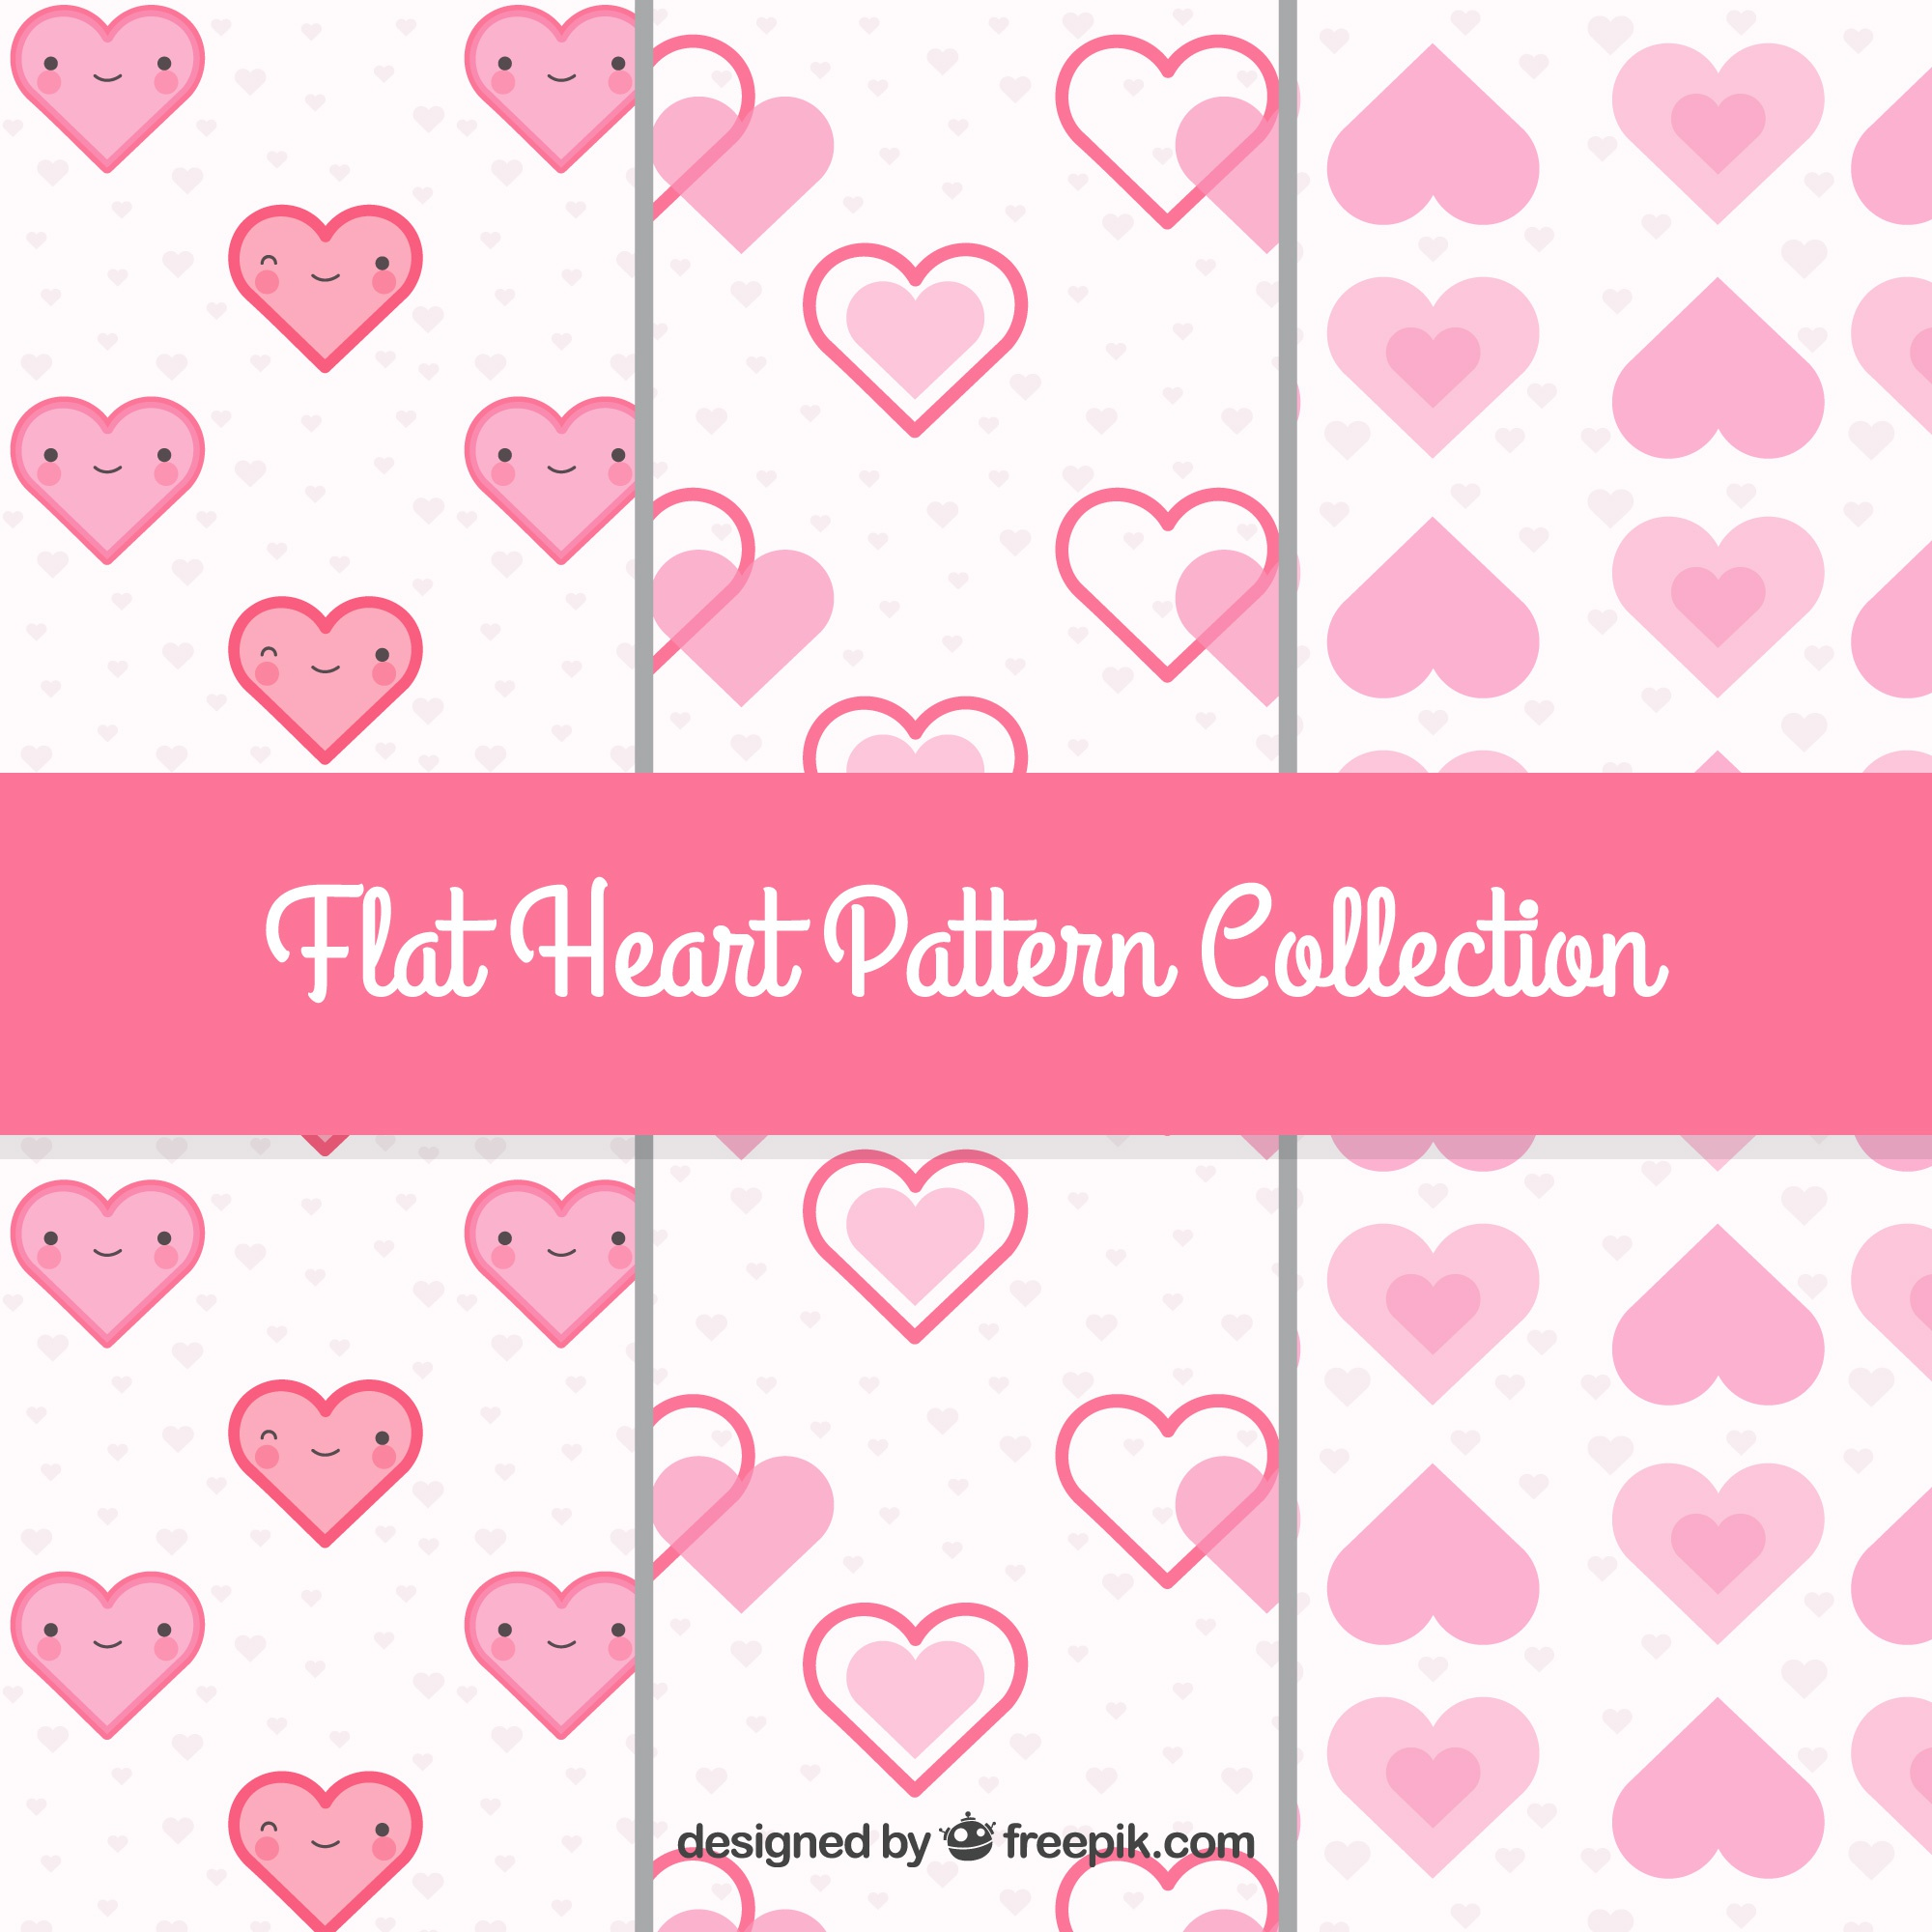 Patterns of decorative hearts